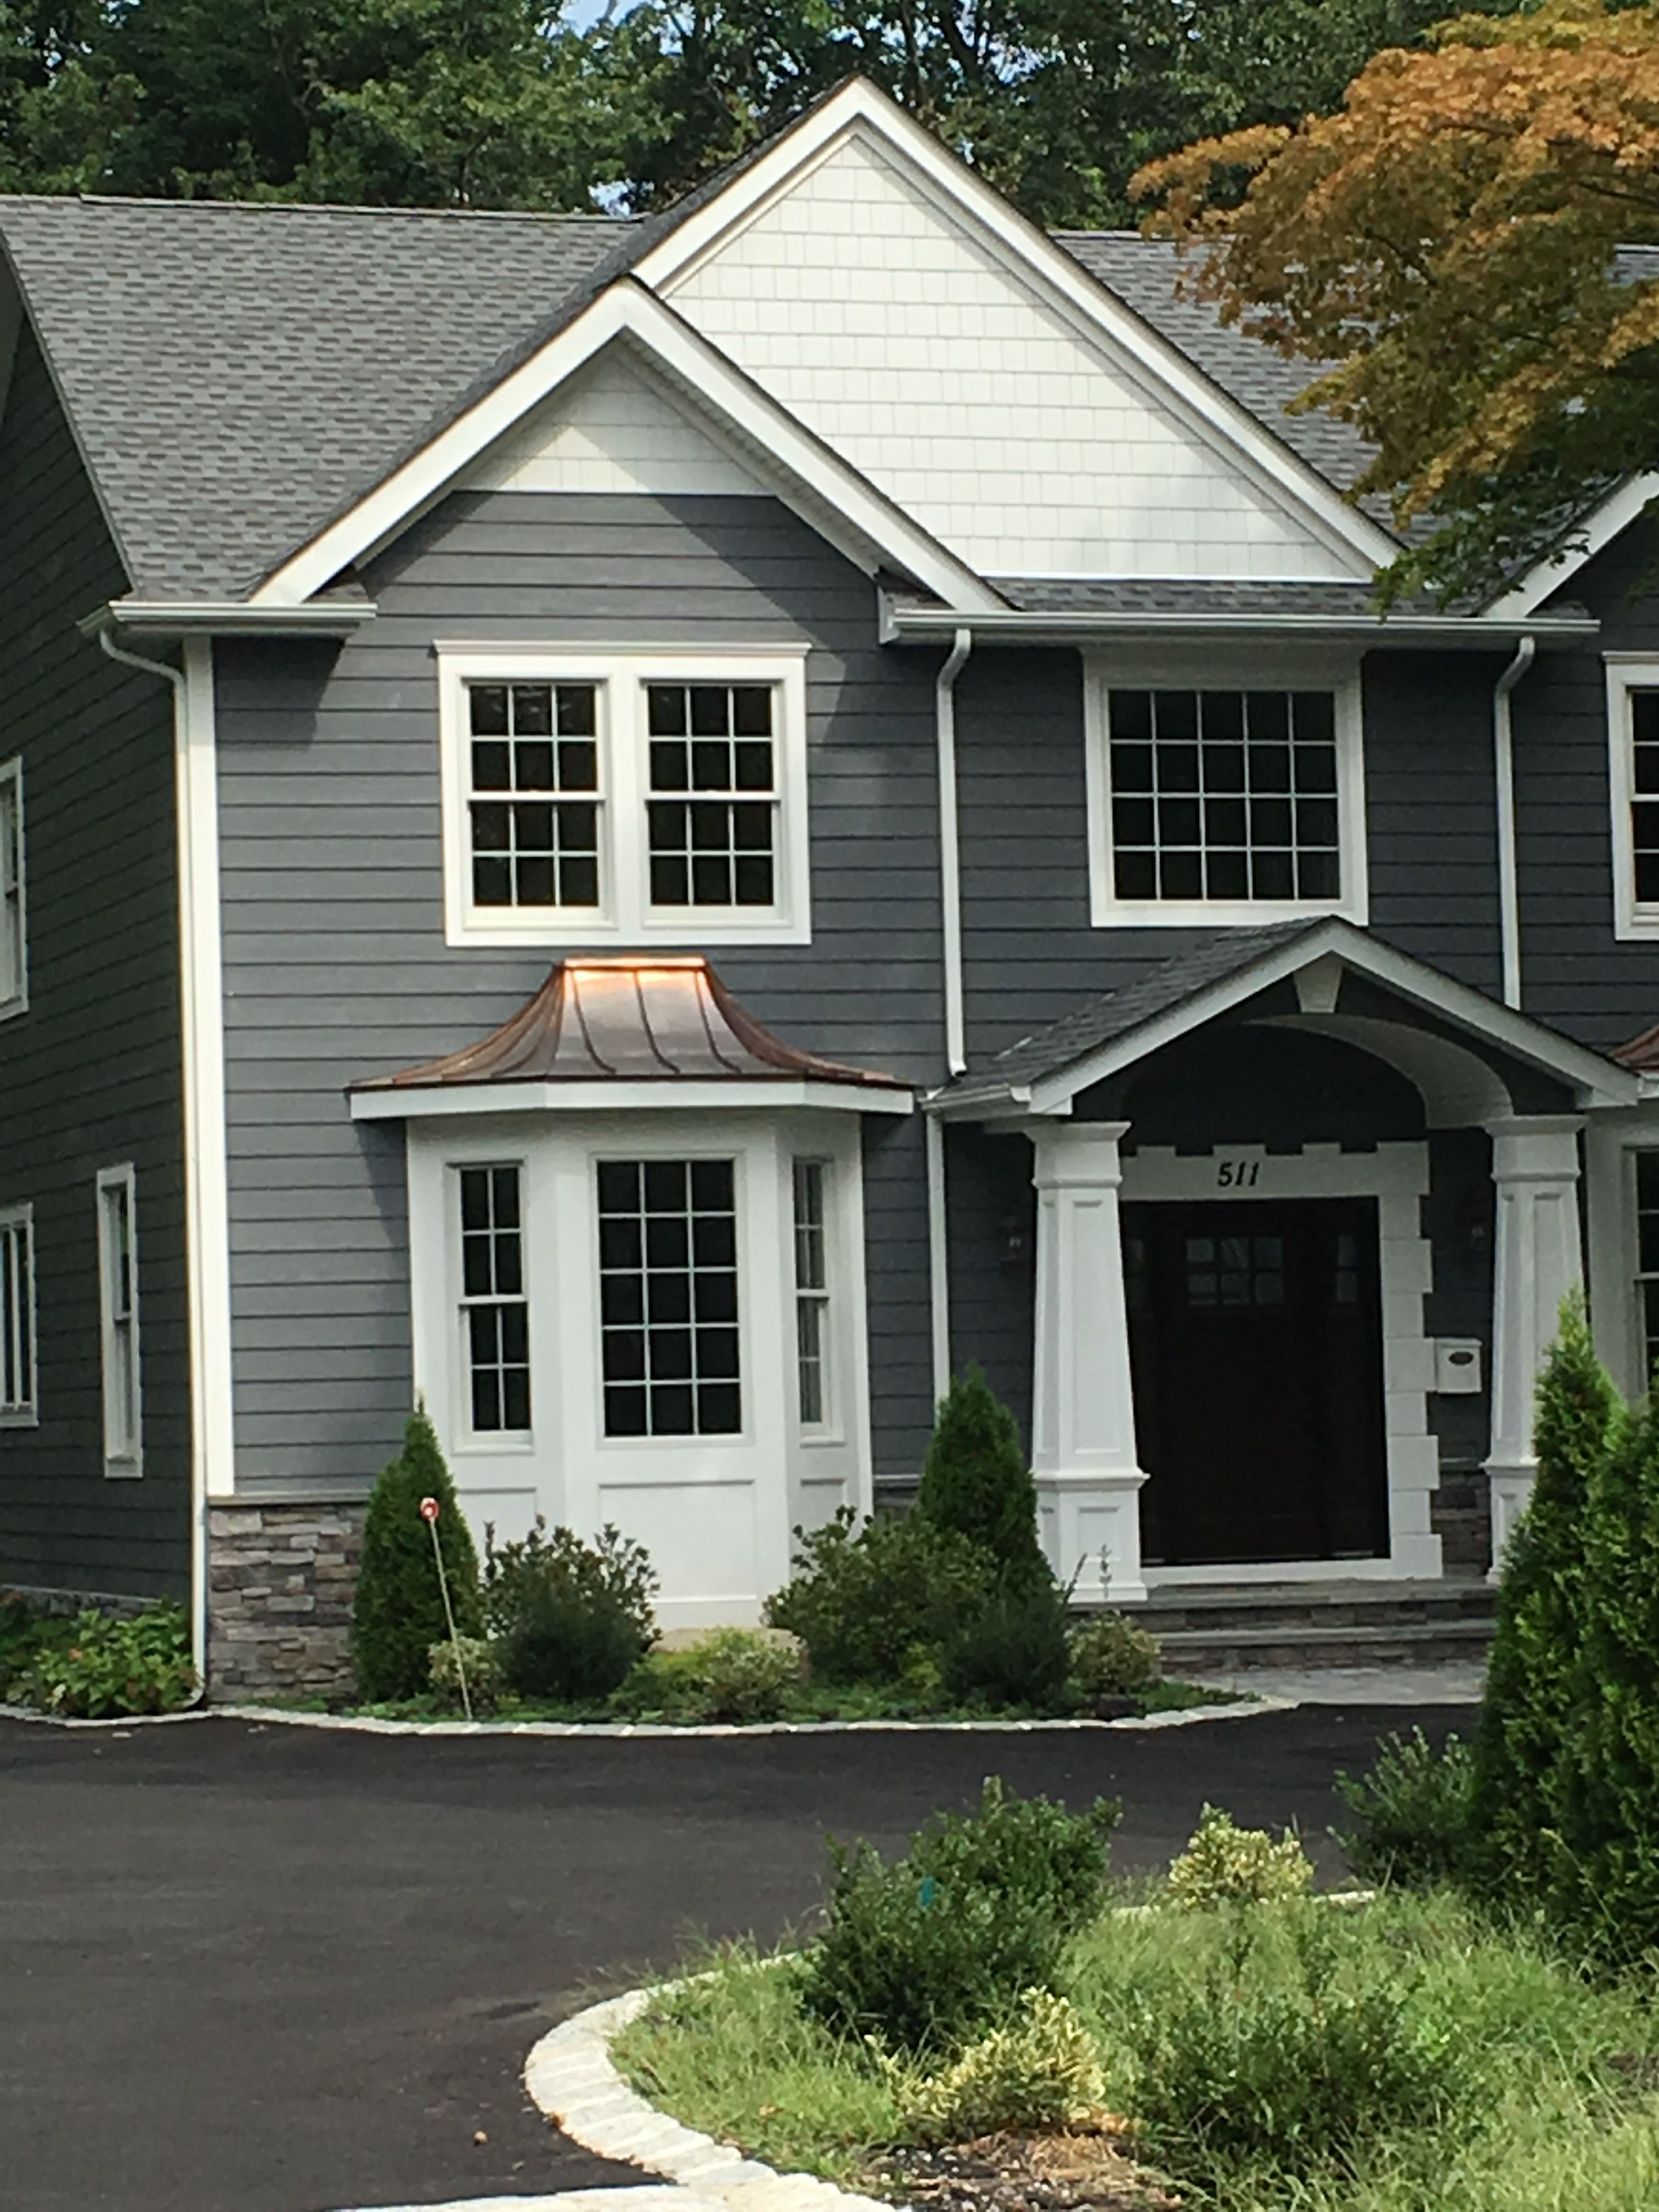 This Color Contrast Gray And White Double Window Above The Bay Is Well Proportioned Outdoor Decor Contrasting Colors